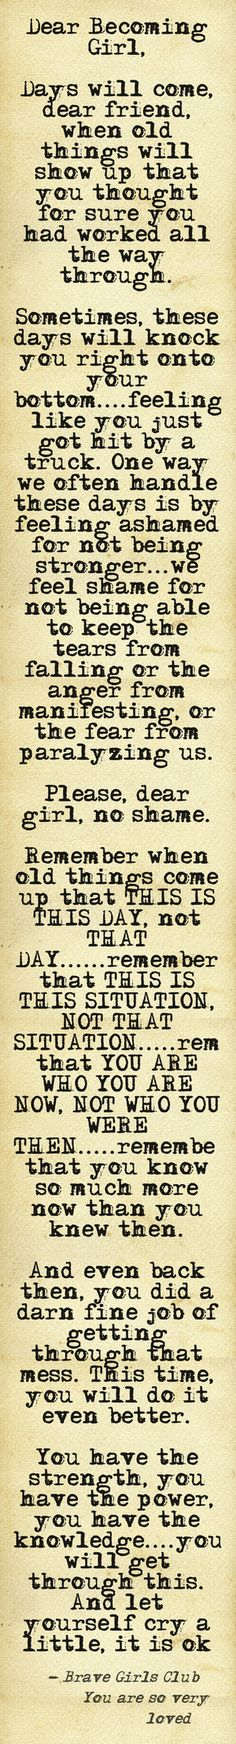 Dear Beautiful Girl (or Guy) ... there will be bad days ..... but you have been through worse than this before, and survived. YOU CAN DO THIS!! Build your resilience & strength, don't fall into the traps of shame & guilt, and resort to old habits on your road to recovery & wellbeing